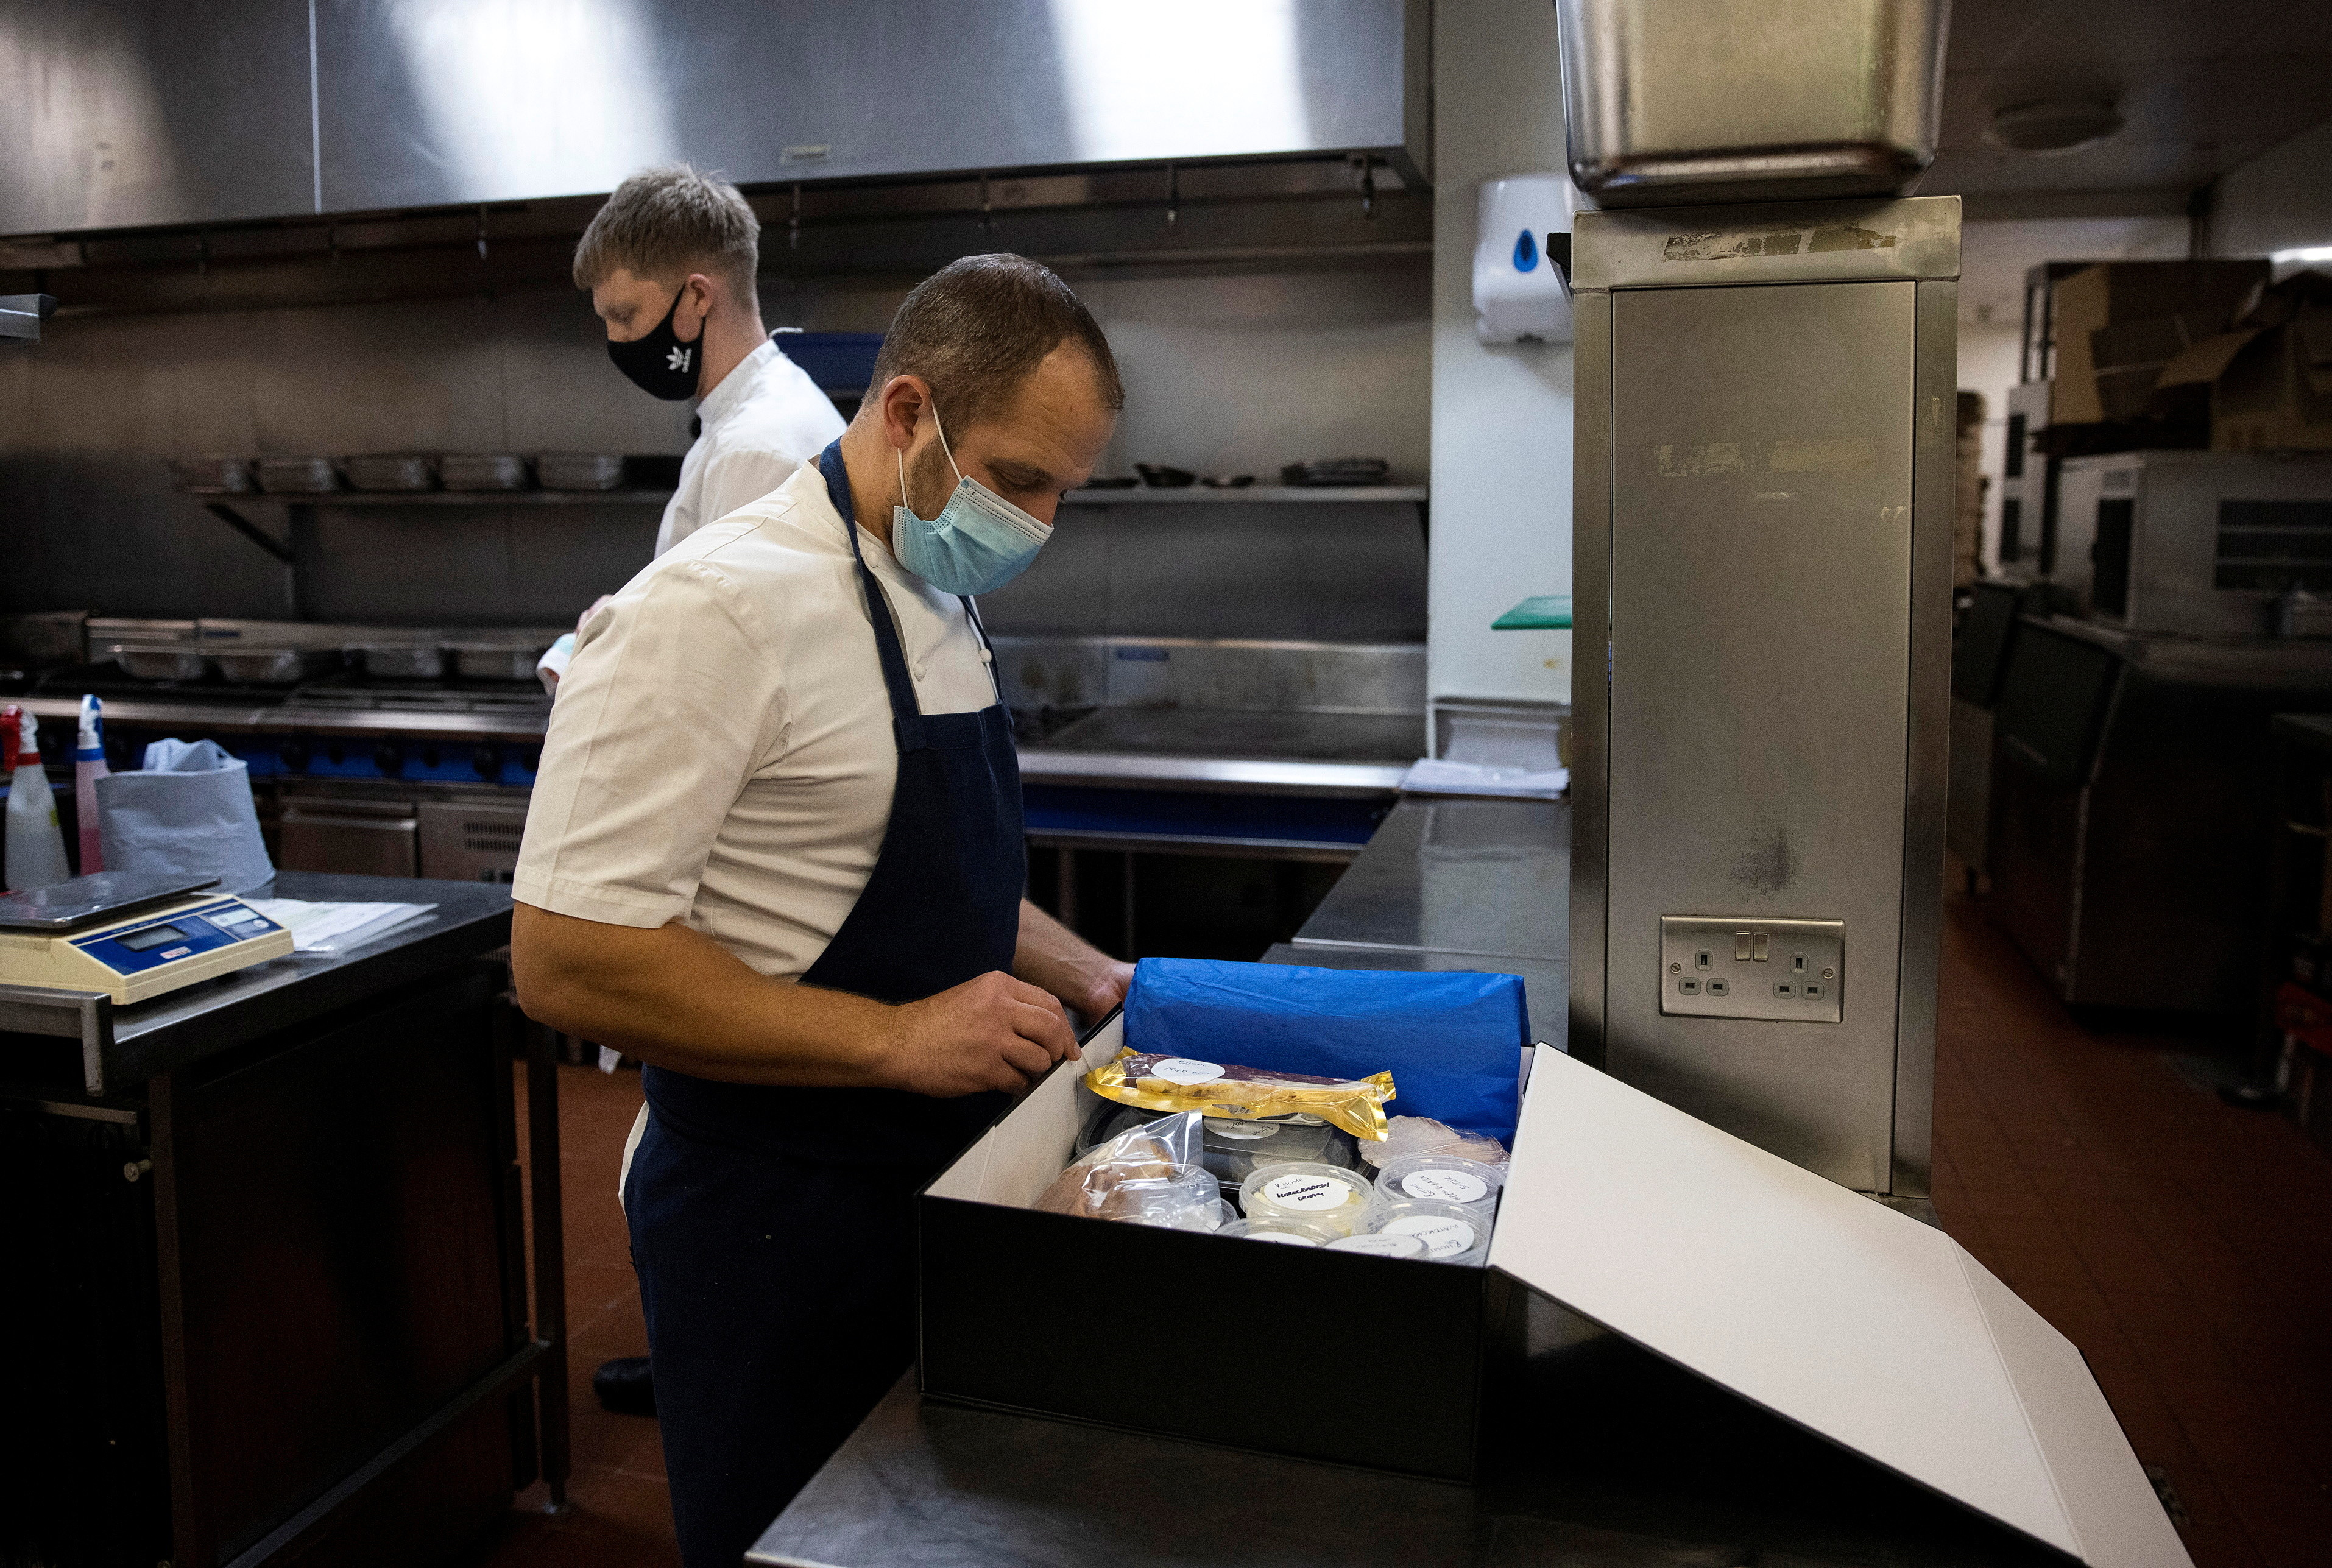 James Knappett, founder and head chef of 'Home', the first at-home fine dining experience, packs food into a box destined for customers in London, Britain, November 18, 2020. Picture taken November 18, 2020. REUTERS/Simon Dawson - RC2BAK9QVT5C